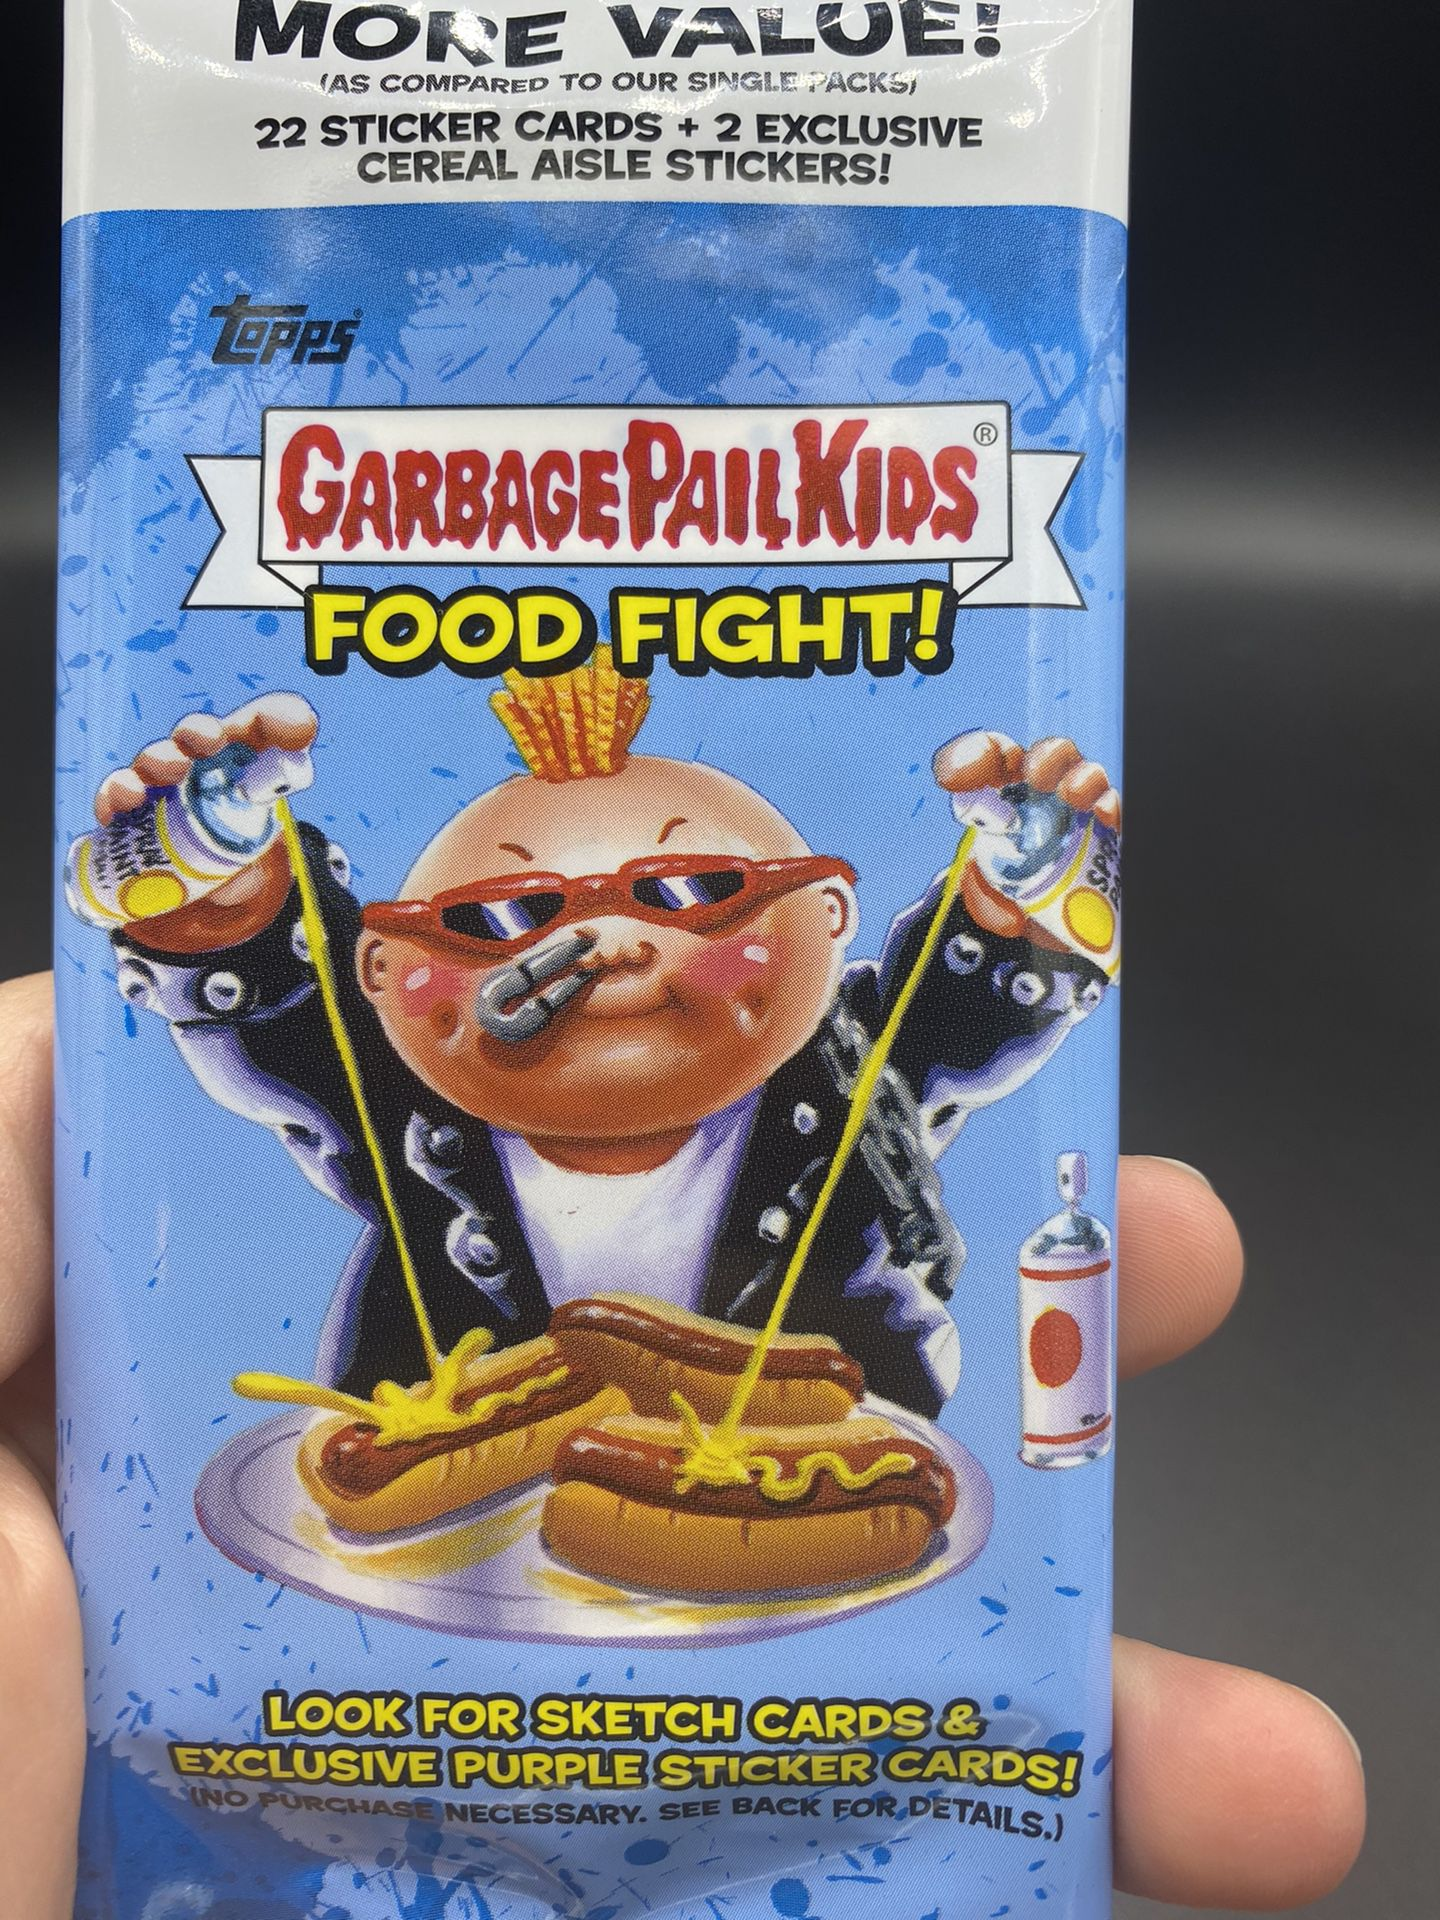 2021 Topps Garbage Pail Kids Food Fight! 22 Card Pack Exclusive Pack